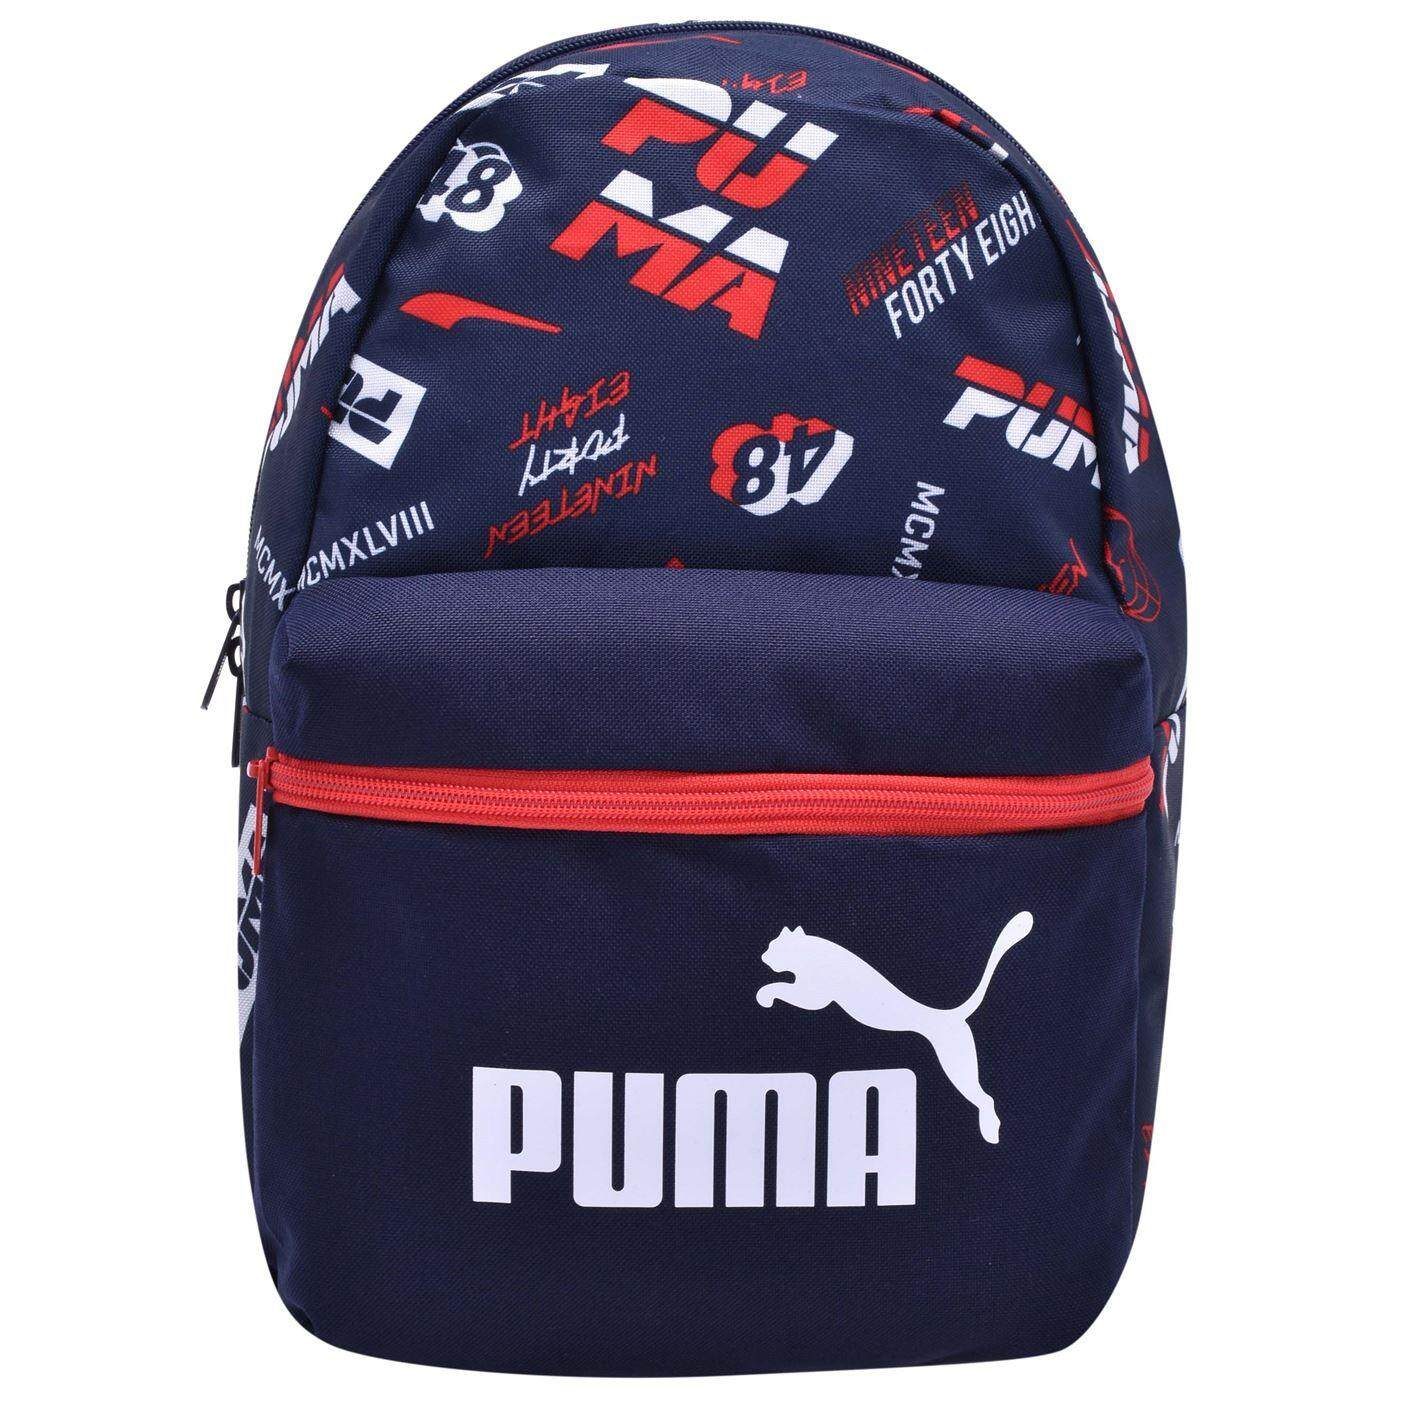 8248624b1c0d Puma Products With Best Online Price At Lazada Malaysia